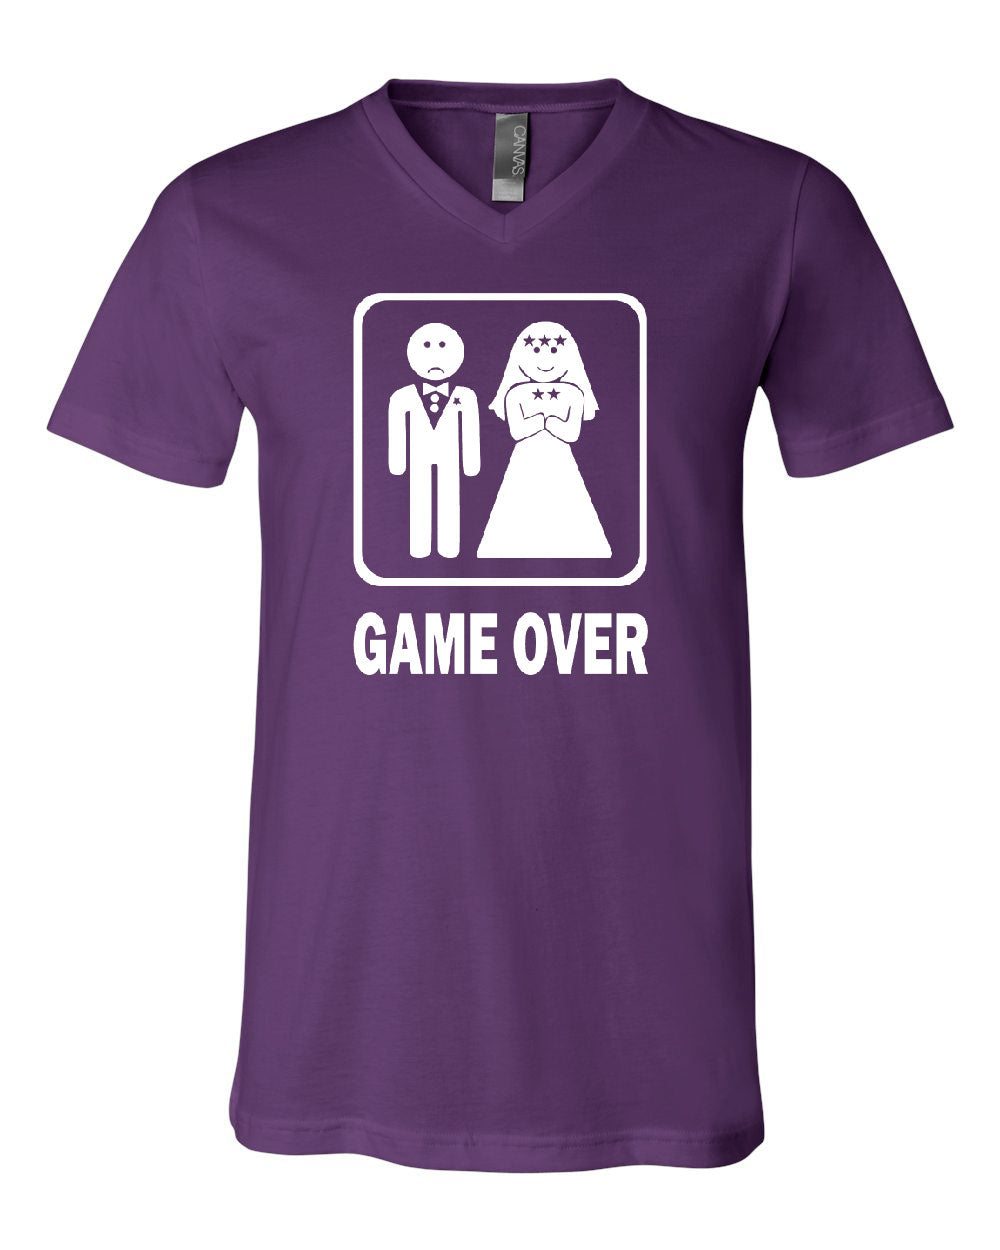 Game over funny v neck t shirt groom and bride wedding tee for Novelty bride wedding dress t shirt